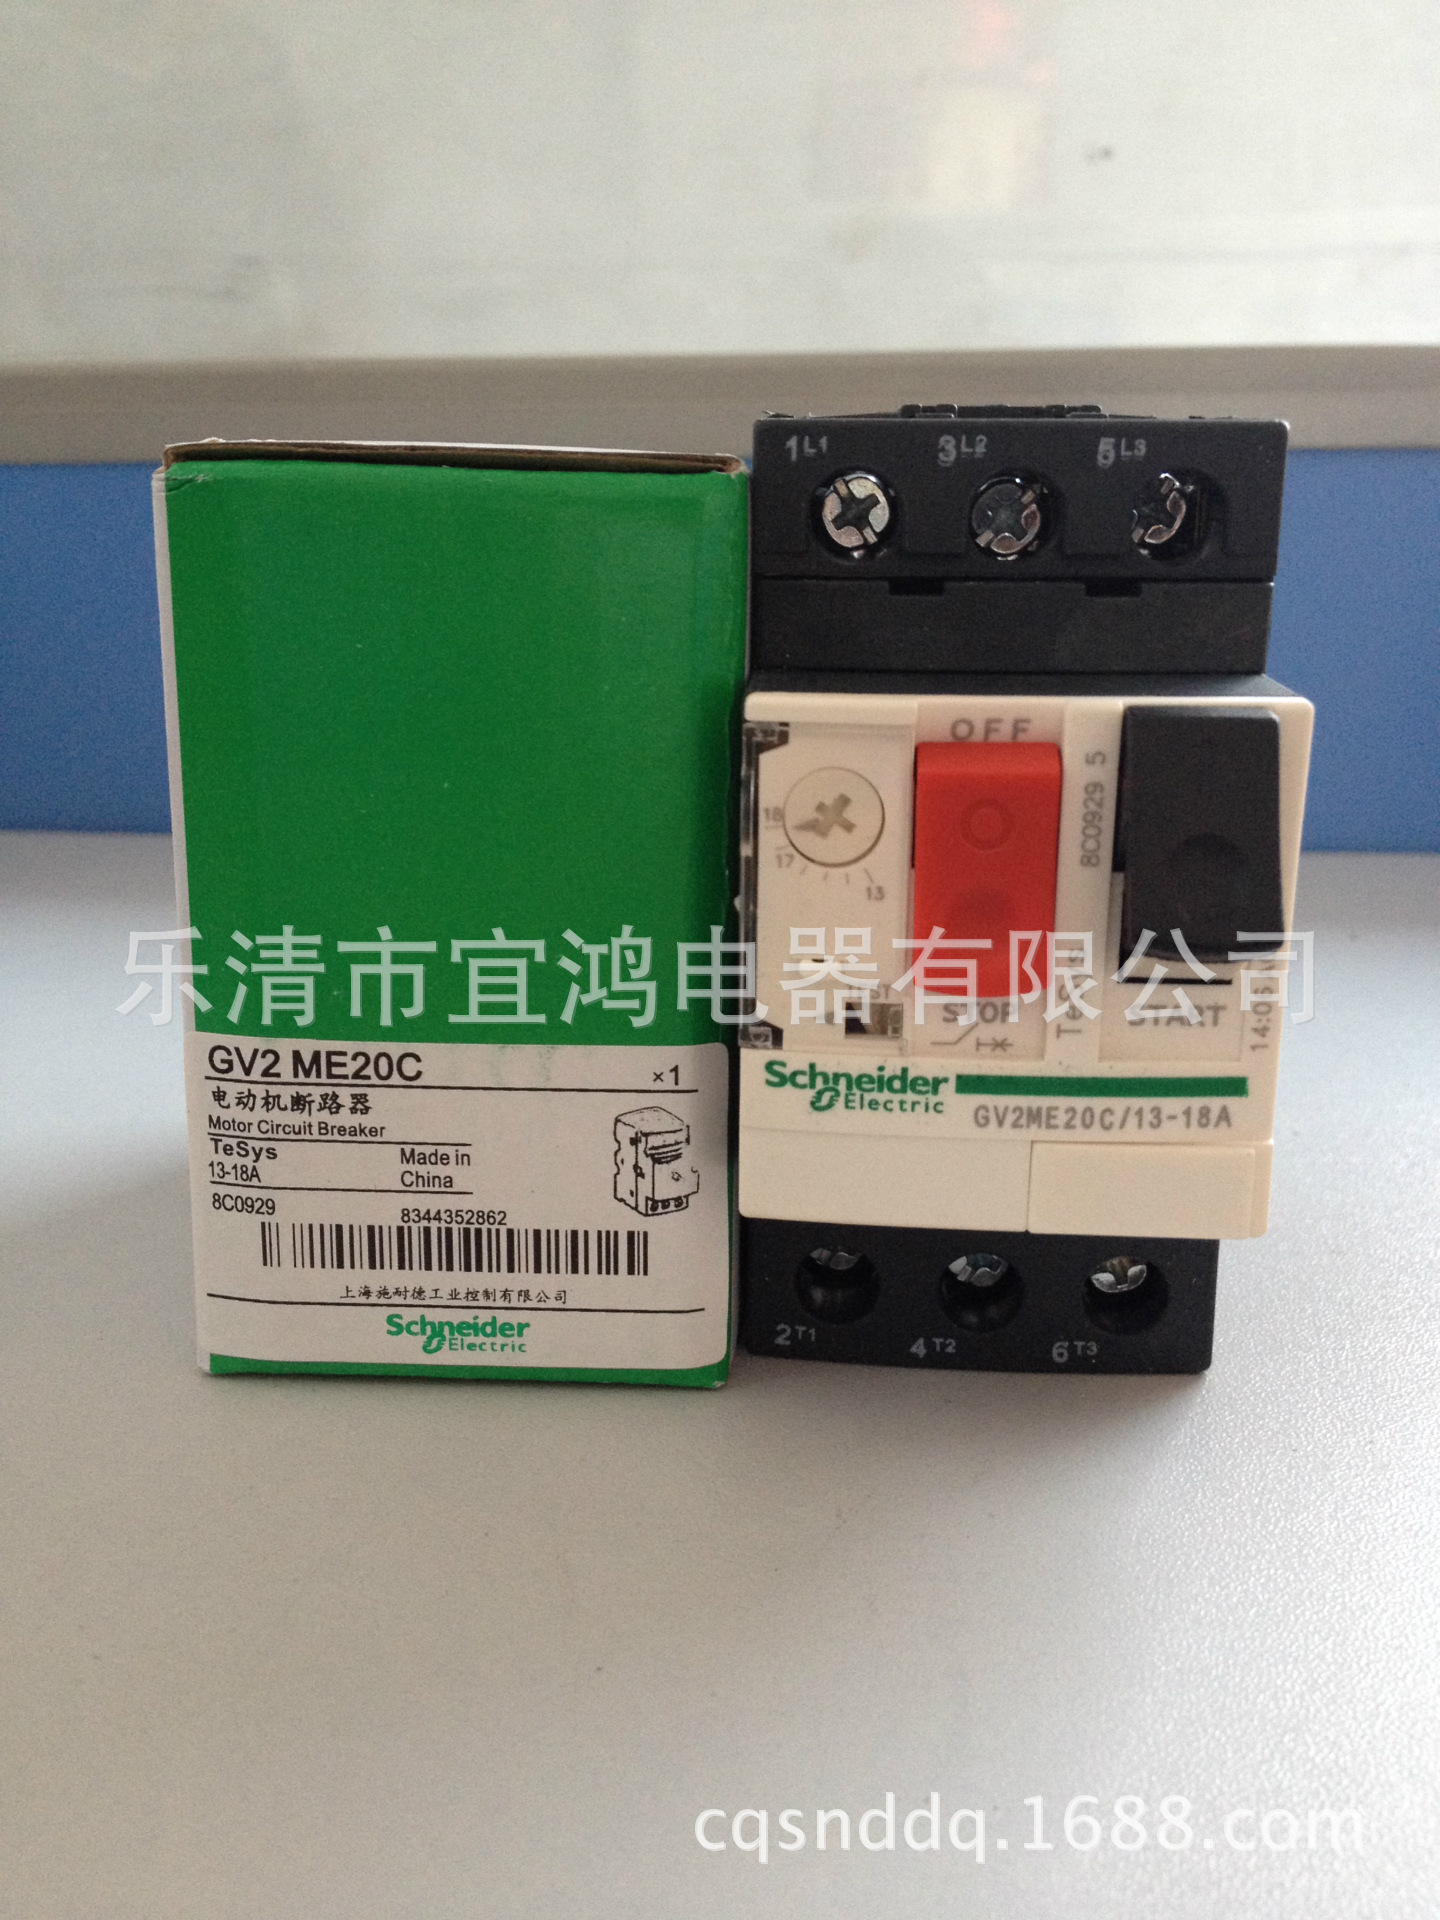 [Special] limit GV2 series motor protection circuit breaker Schneider GV2-ME20C / 13-18A